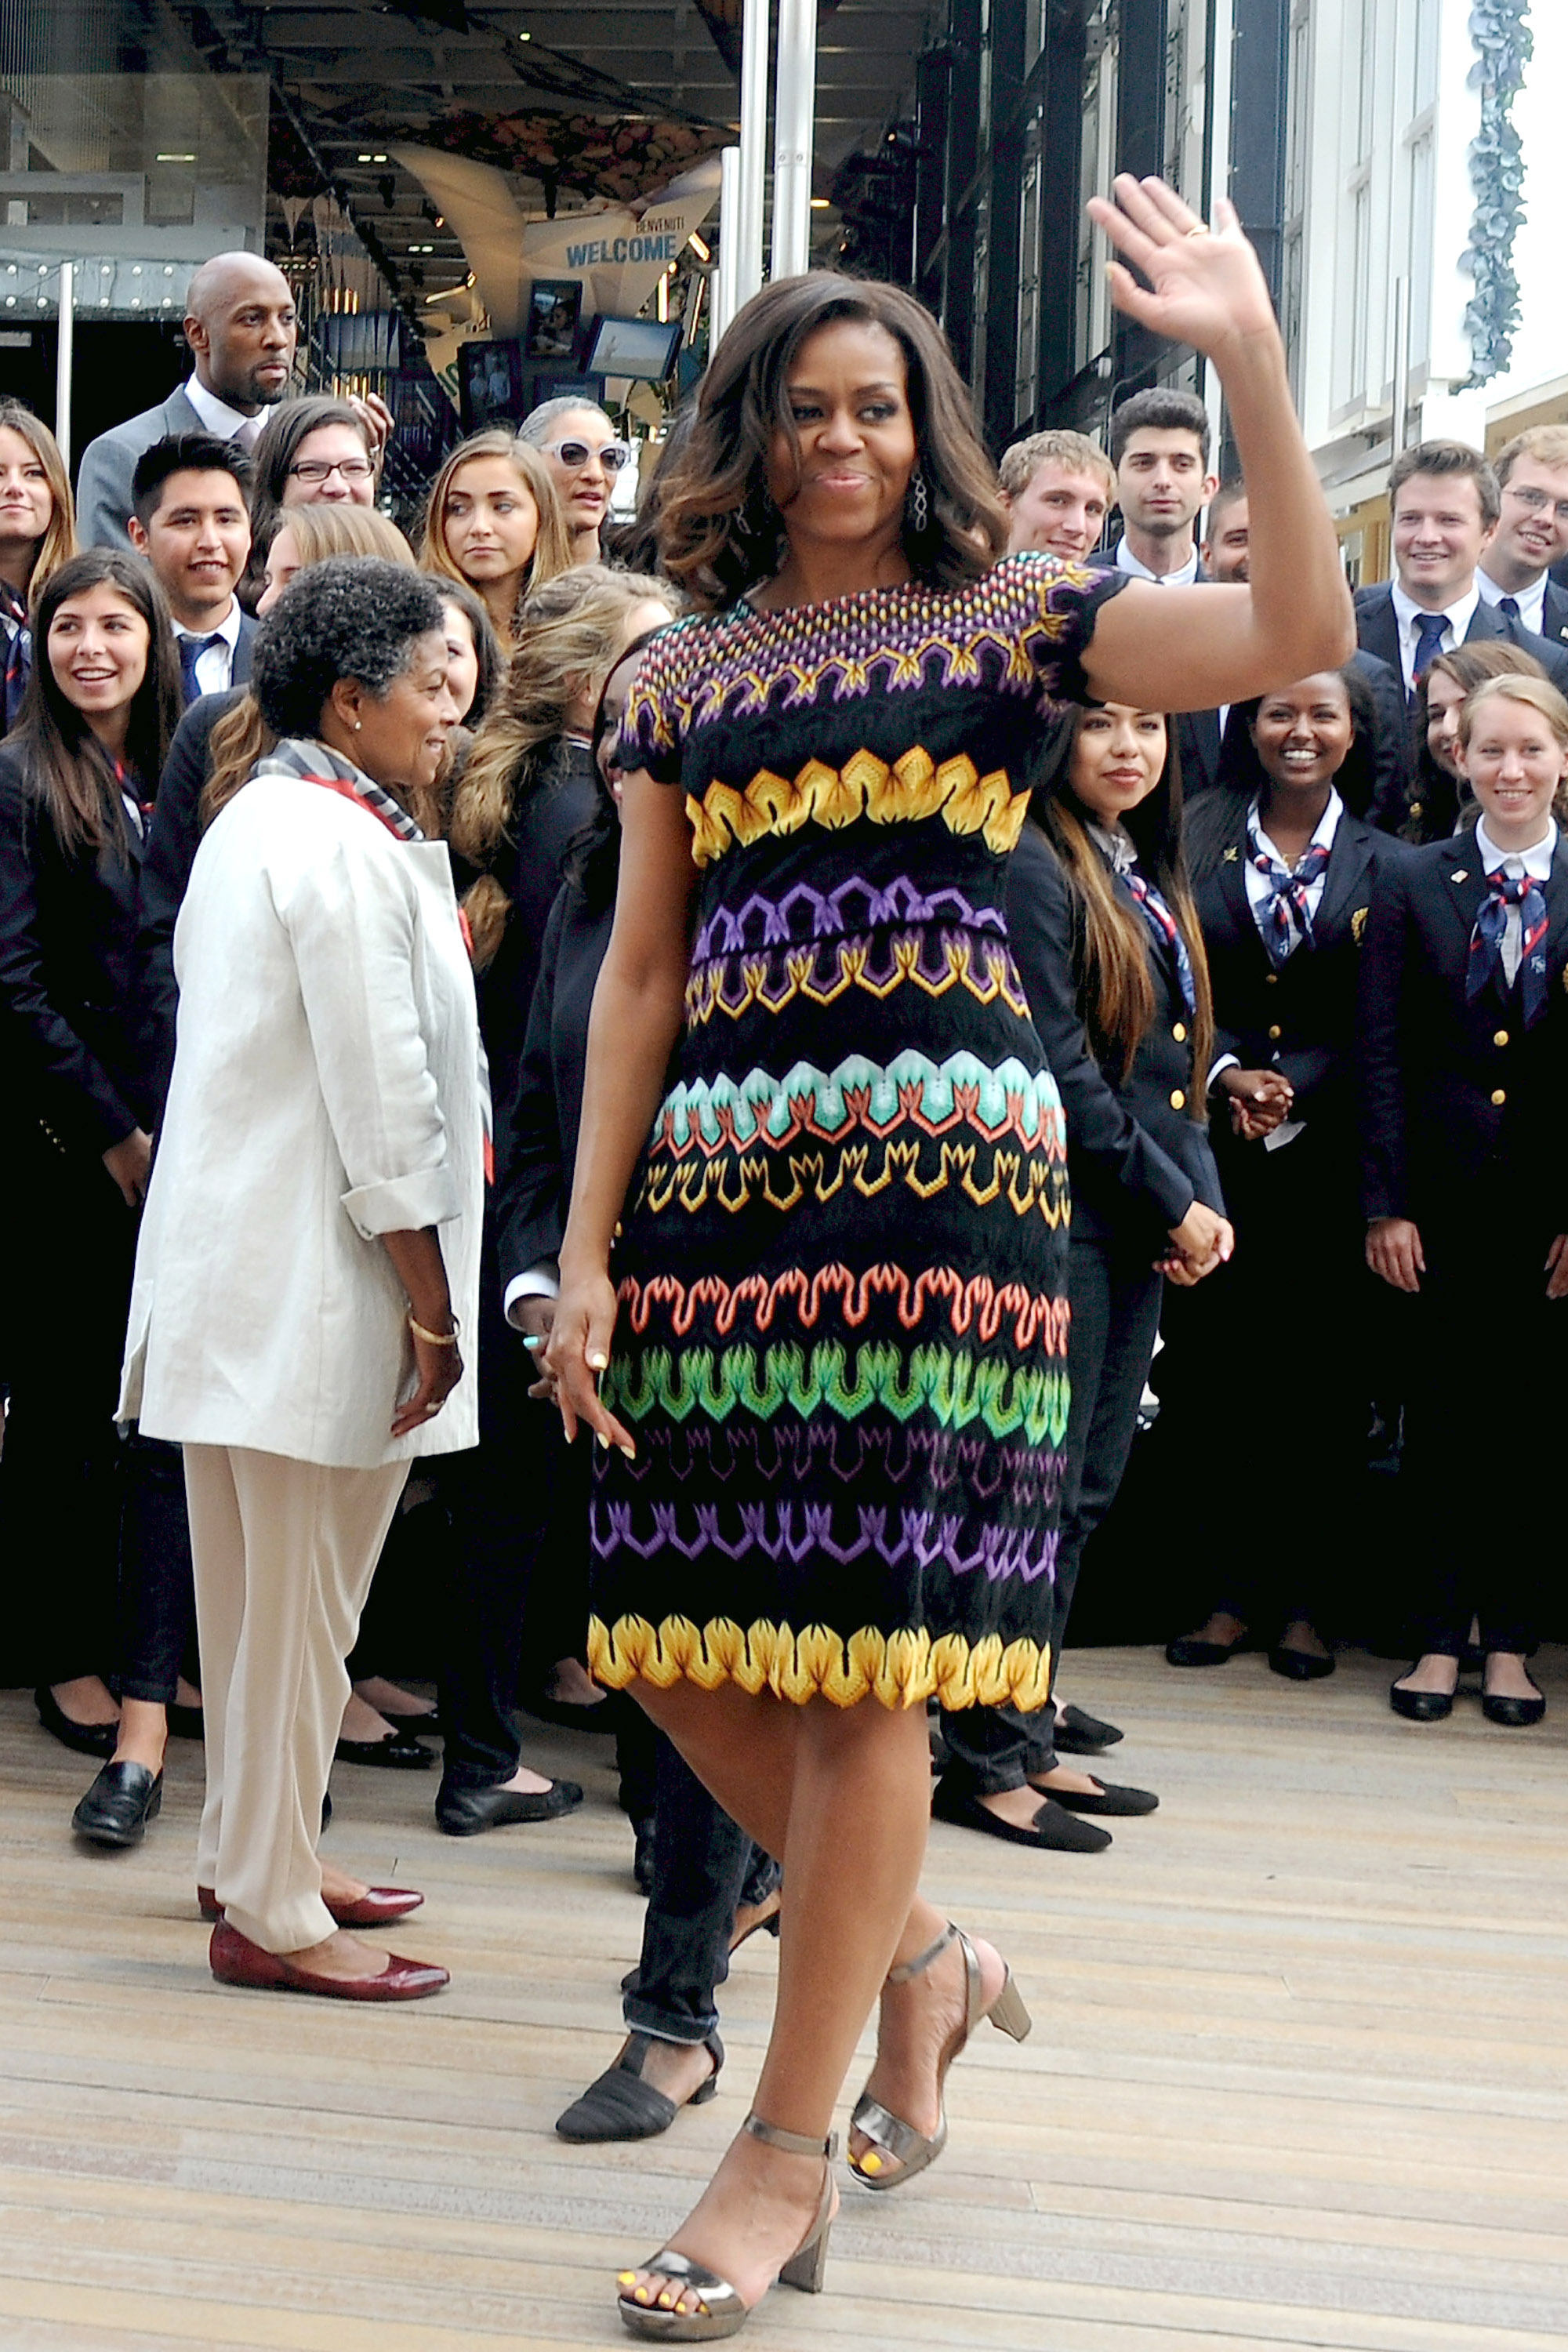 Just Michelle stomping on the patricarchy in these killer heels.